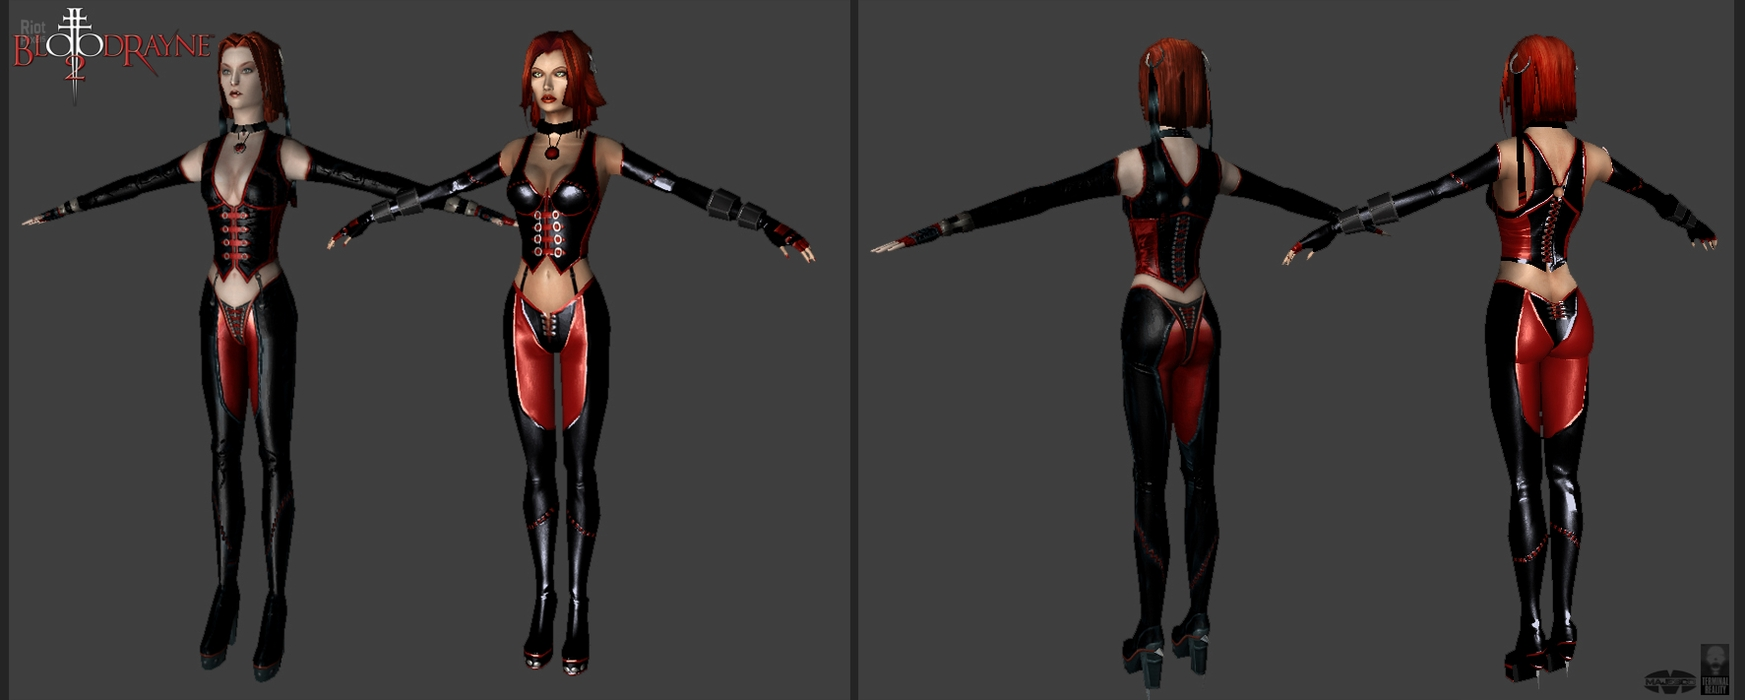 Bloodrayne 2 full nude cheat ps2 hardcore pics